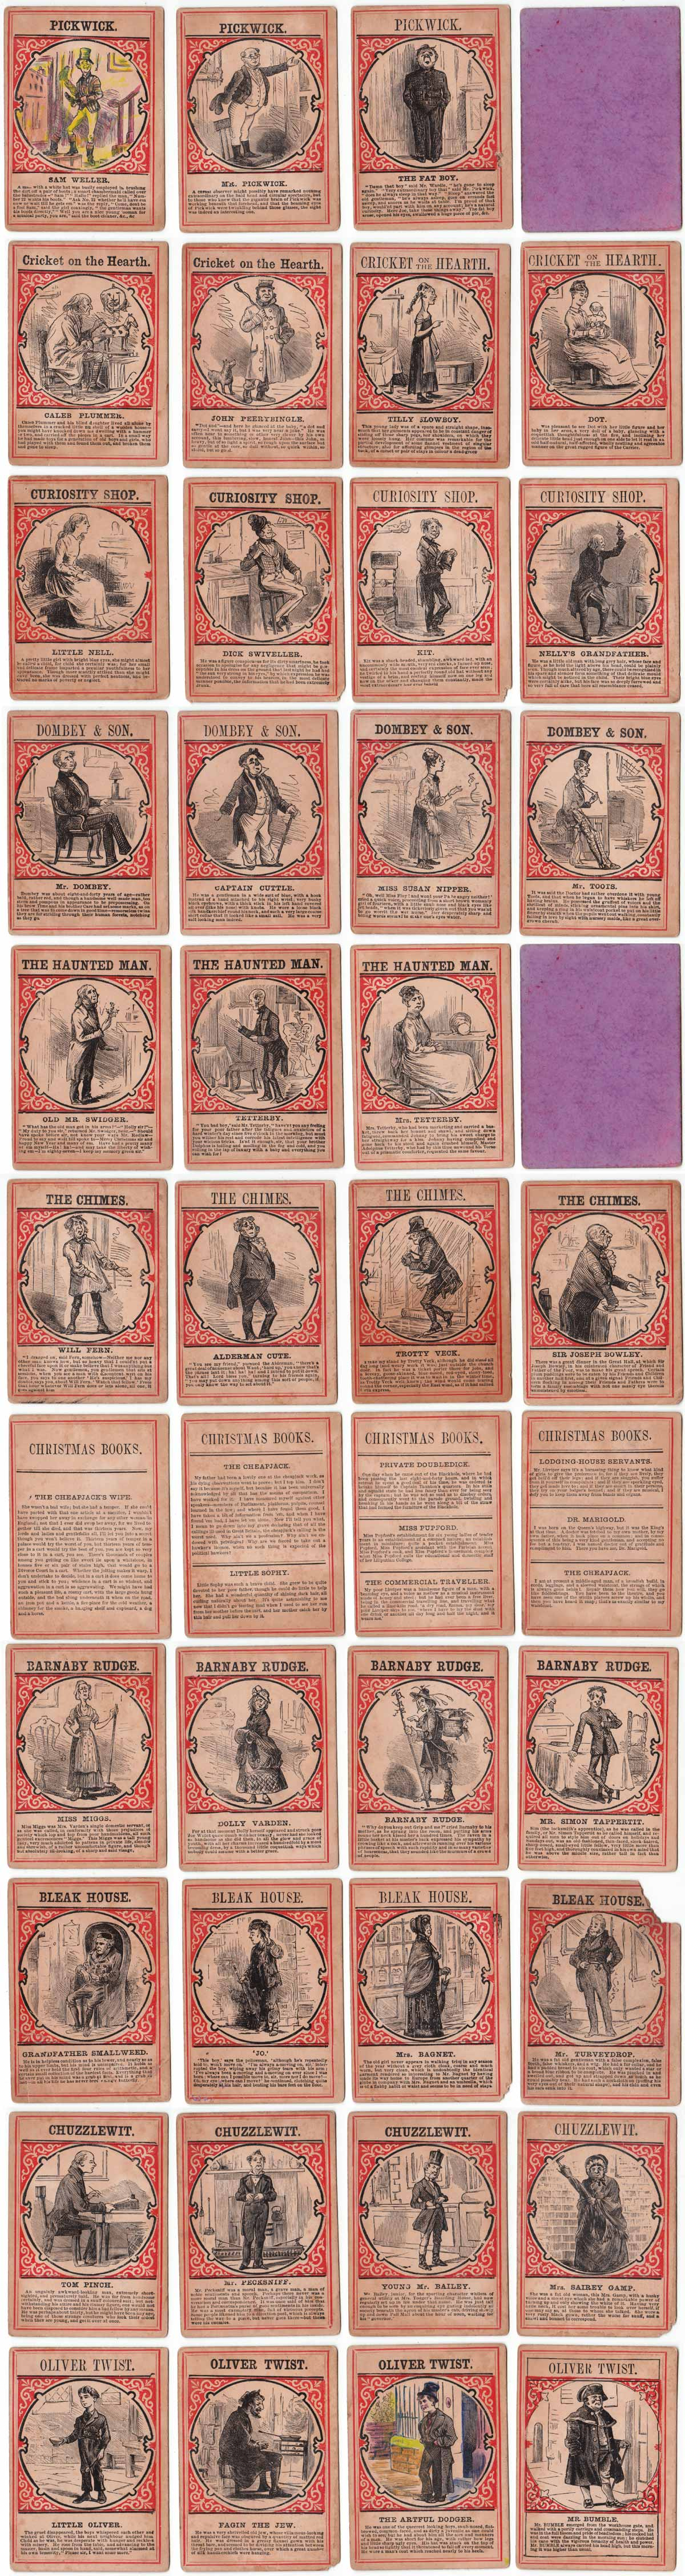 """Characters from Charles Dickens"" card game published by D. Ogilvy, mid-19th century"